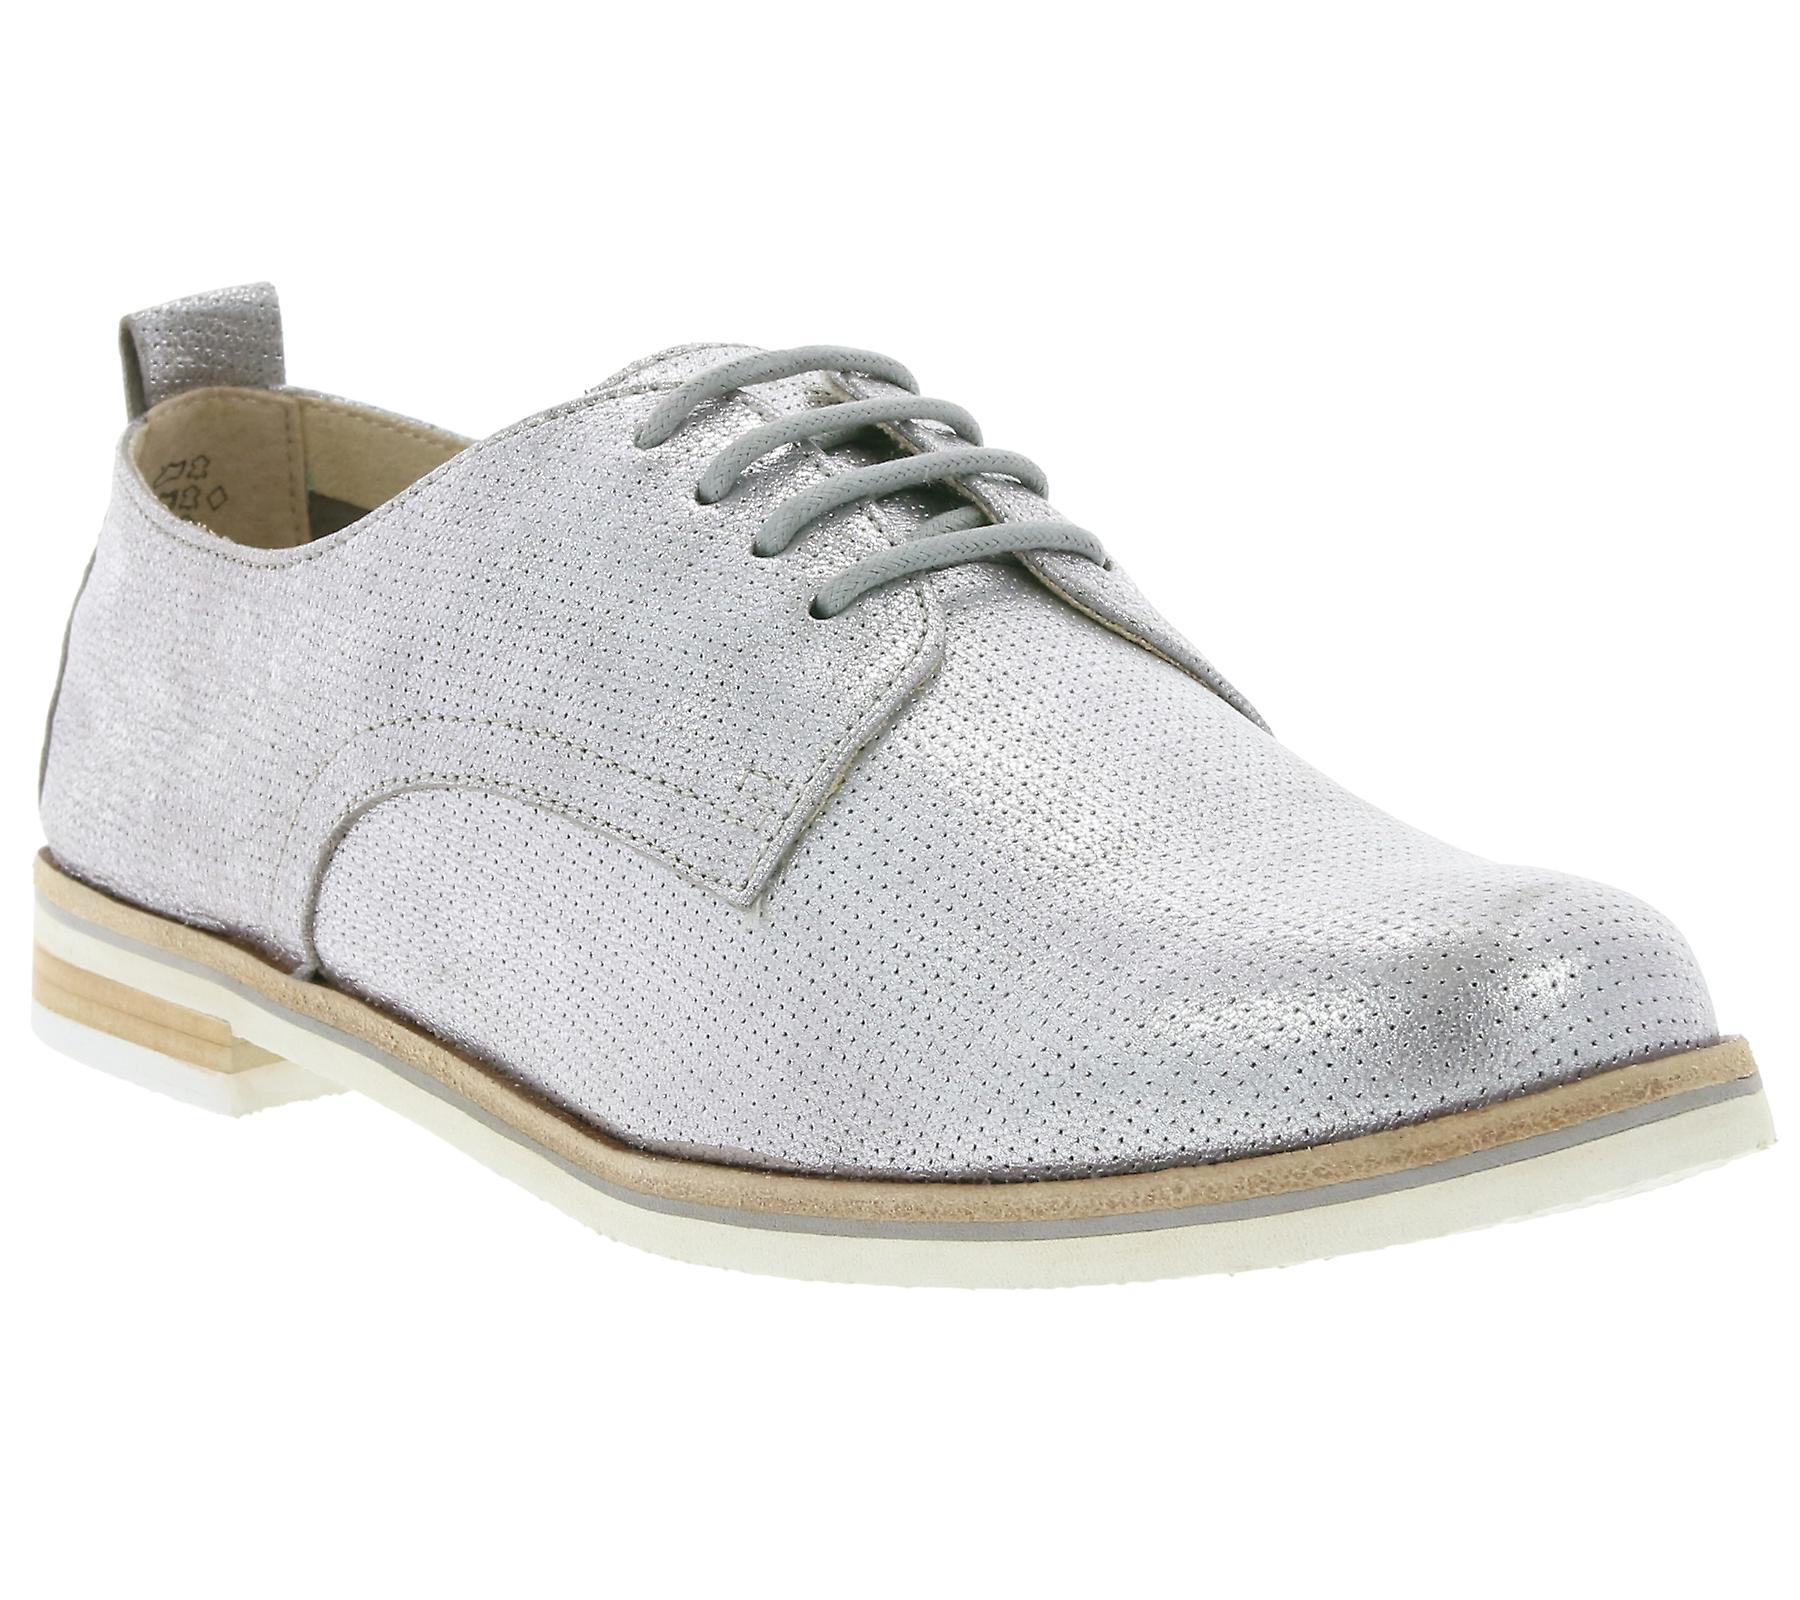 CAPRICE Alba shoes ladies real leather flat shoes Alba silver metal 20e53e